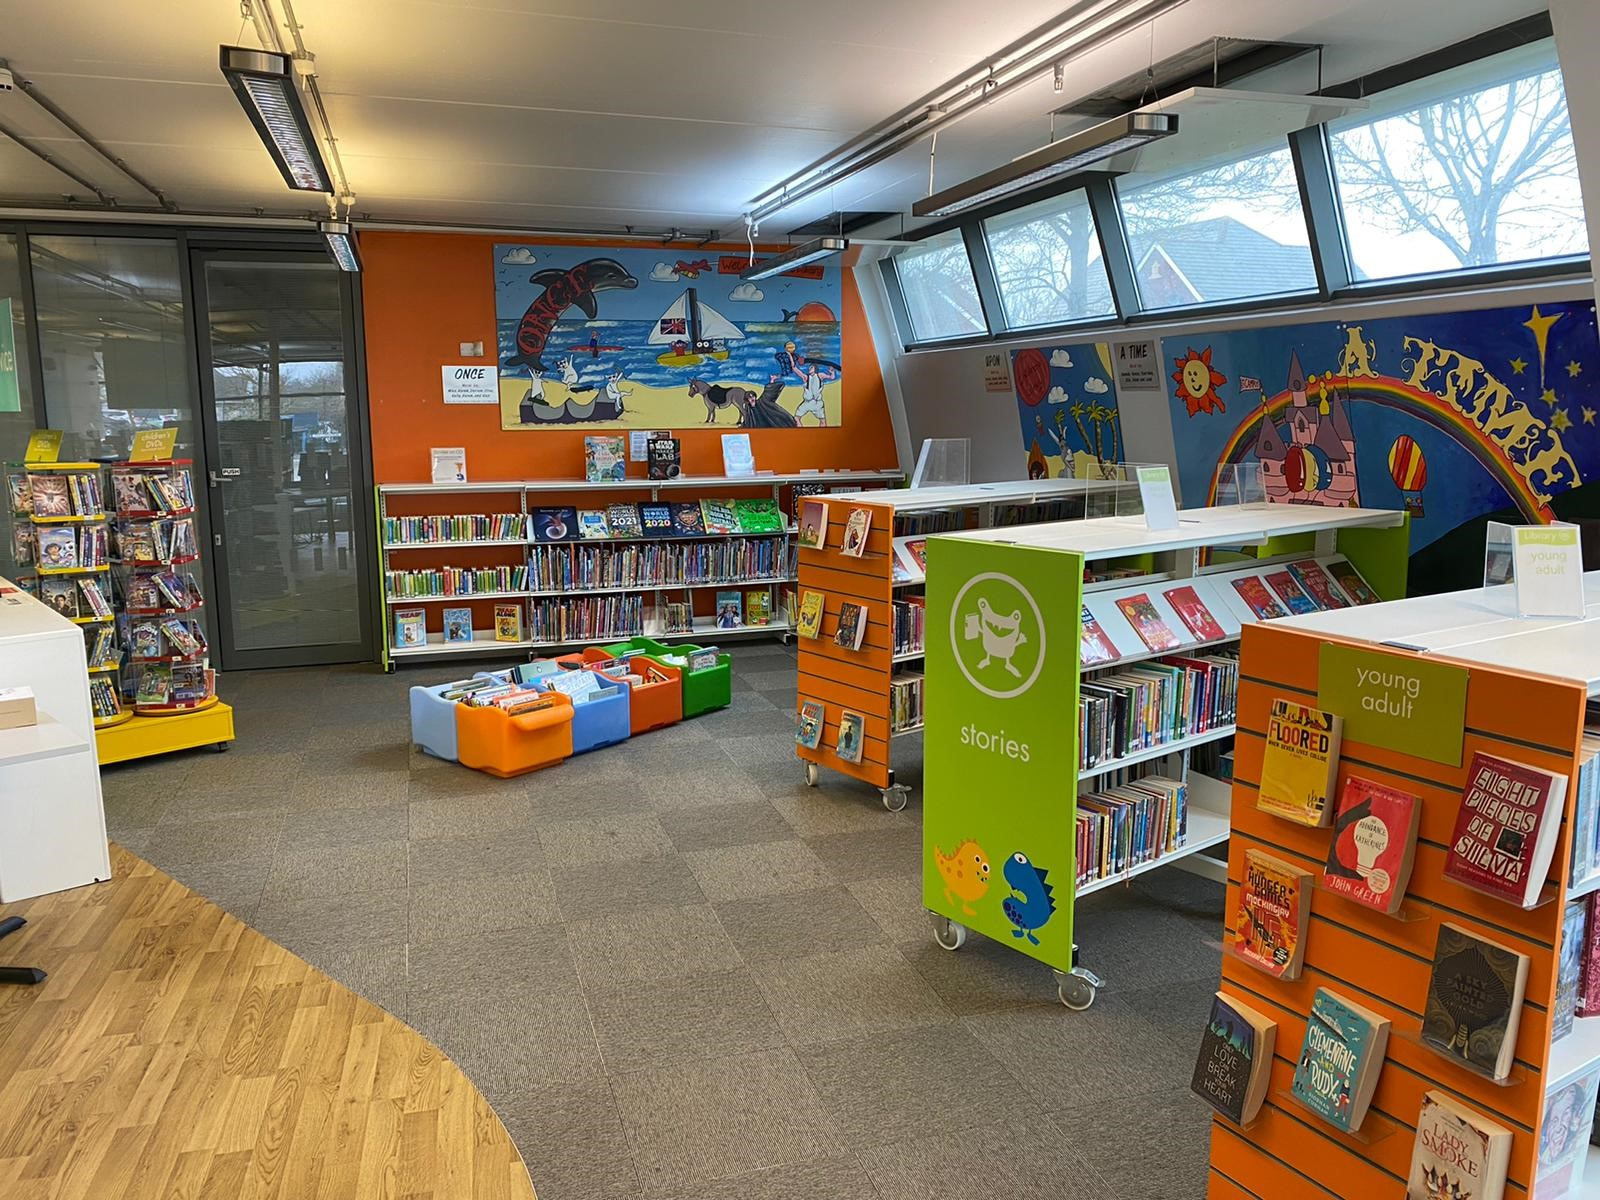 An interior of a children's area at a library, with colourful paintings on the walls and books on the shelves